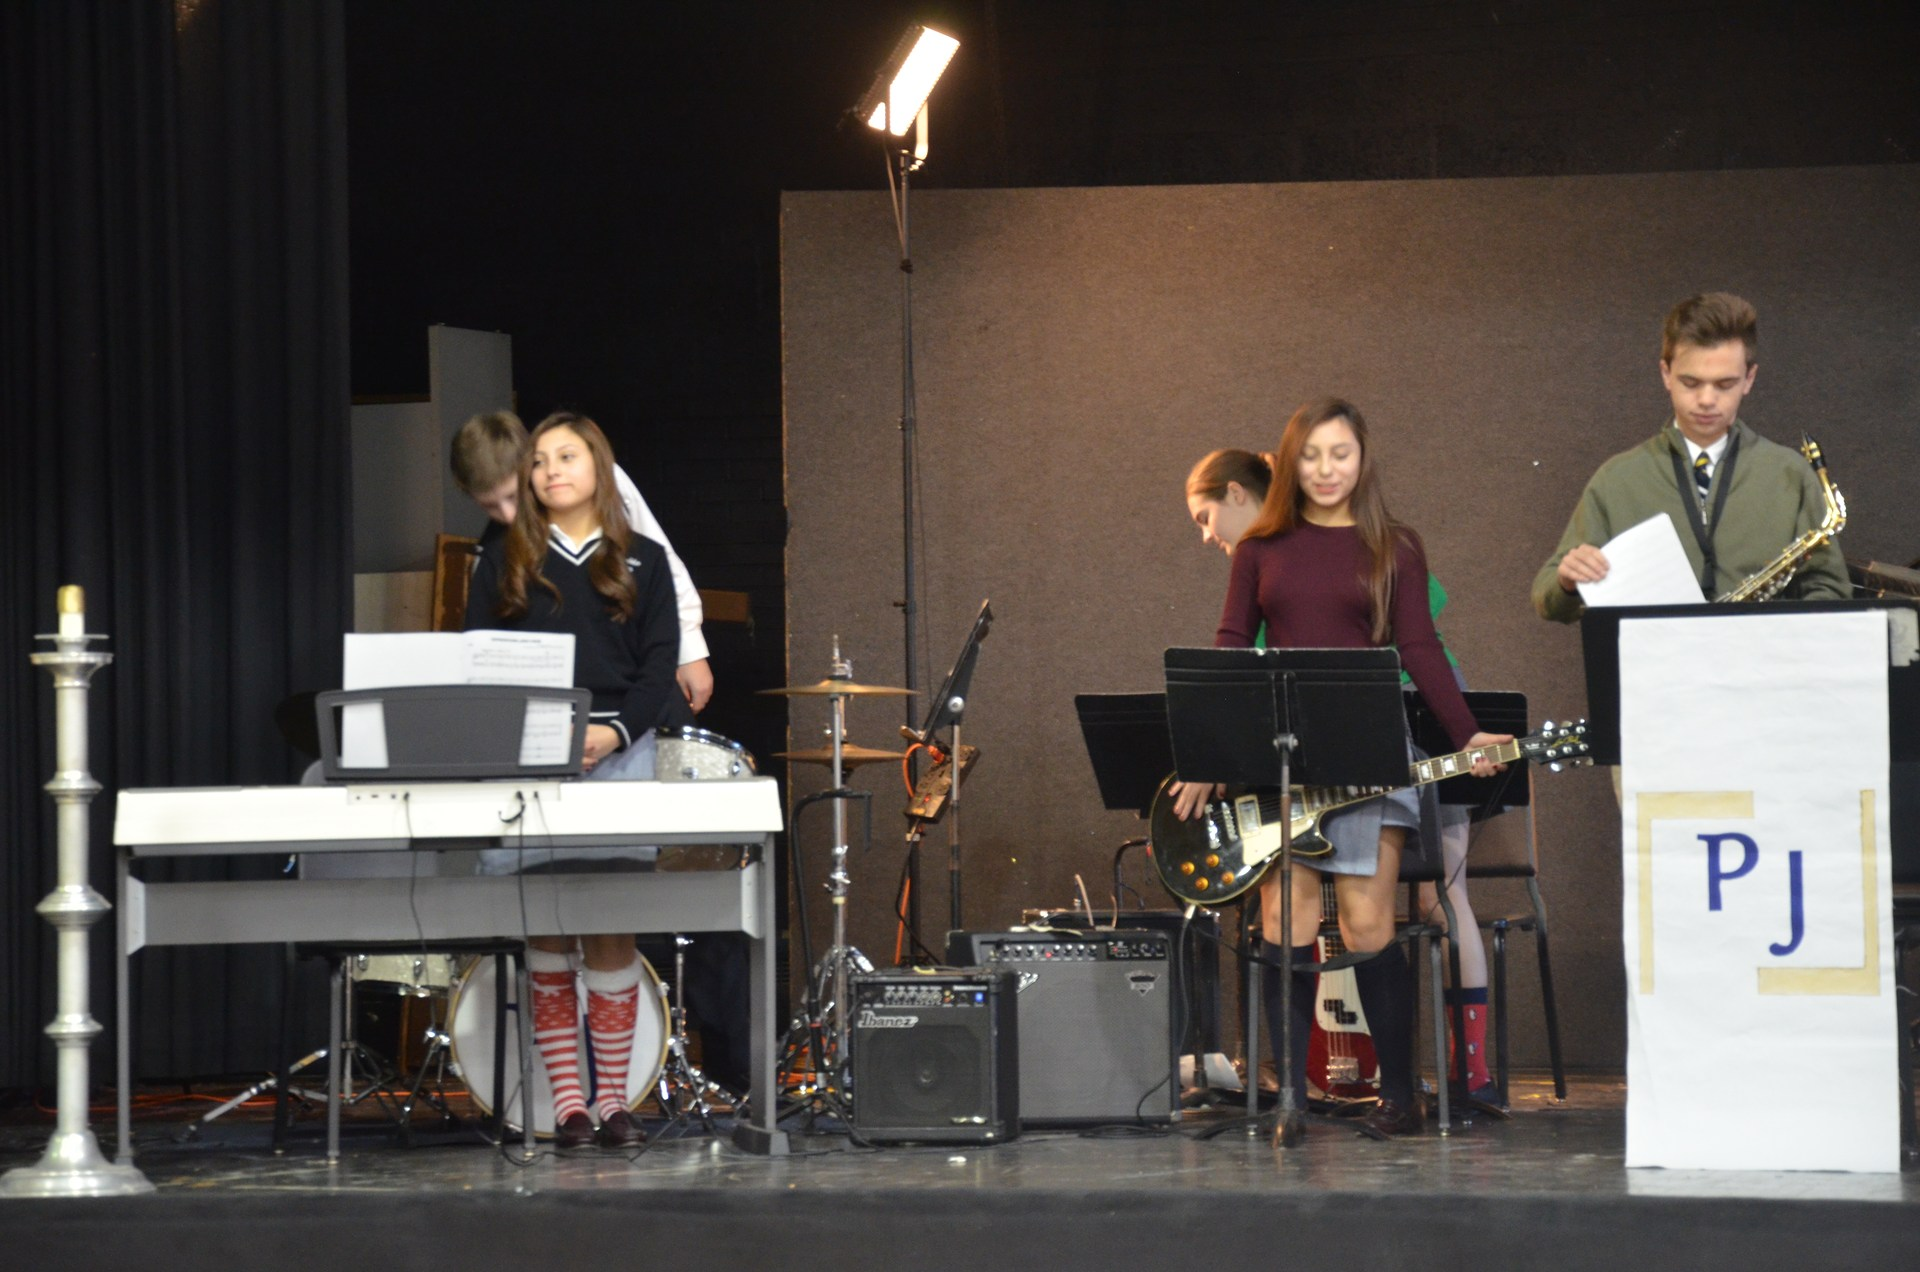 Student band playing in mass again